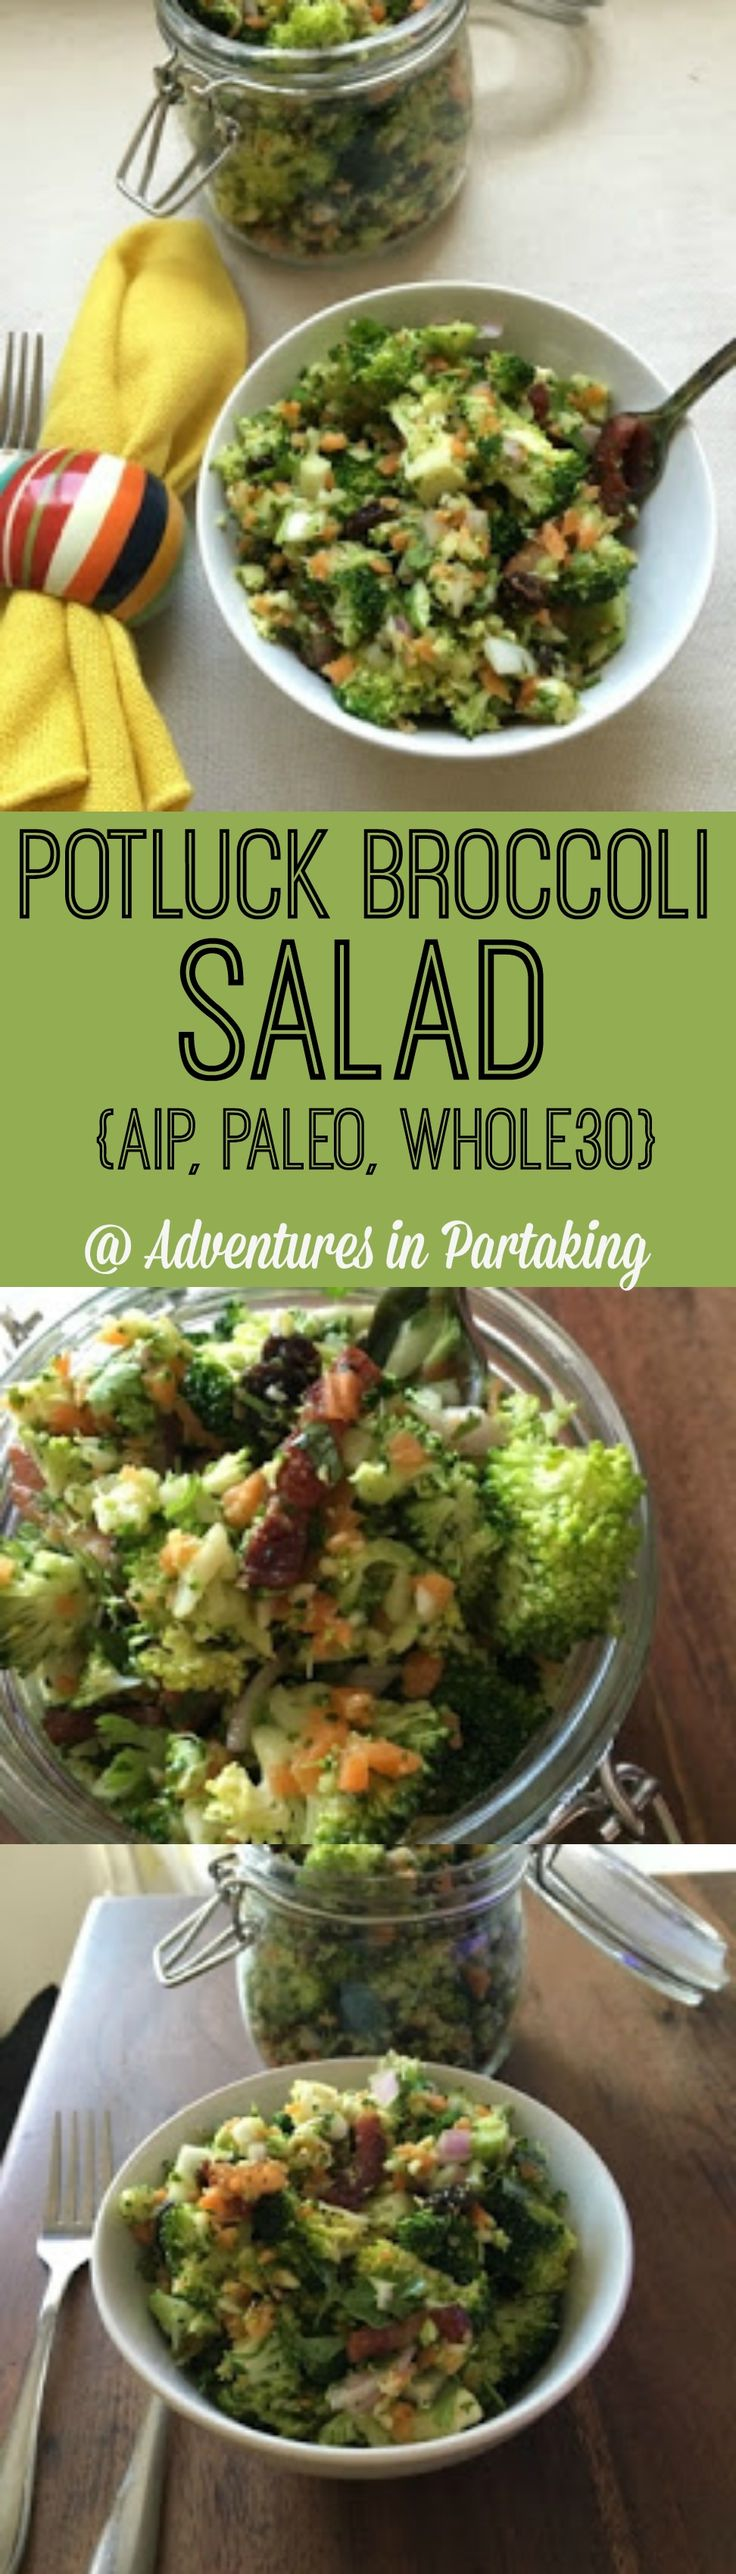 Potluck Broccoli SaladServes: 4 Time: 10 Minutes Ingredients for the salad: 1 head broccoli (smallish) - chopped into small pieces Broccoli stalk- shredded/ grated 1/2 cup shredded carrots 1 small red onion - diced 1/4 cup cilantro - chopped 4 slices bacon cooked + cooking fat 1/3 cup raisins